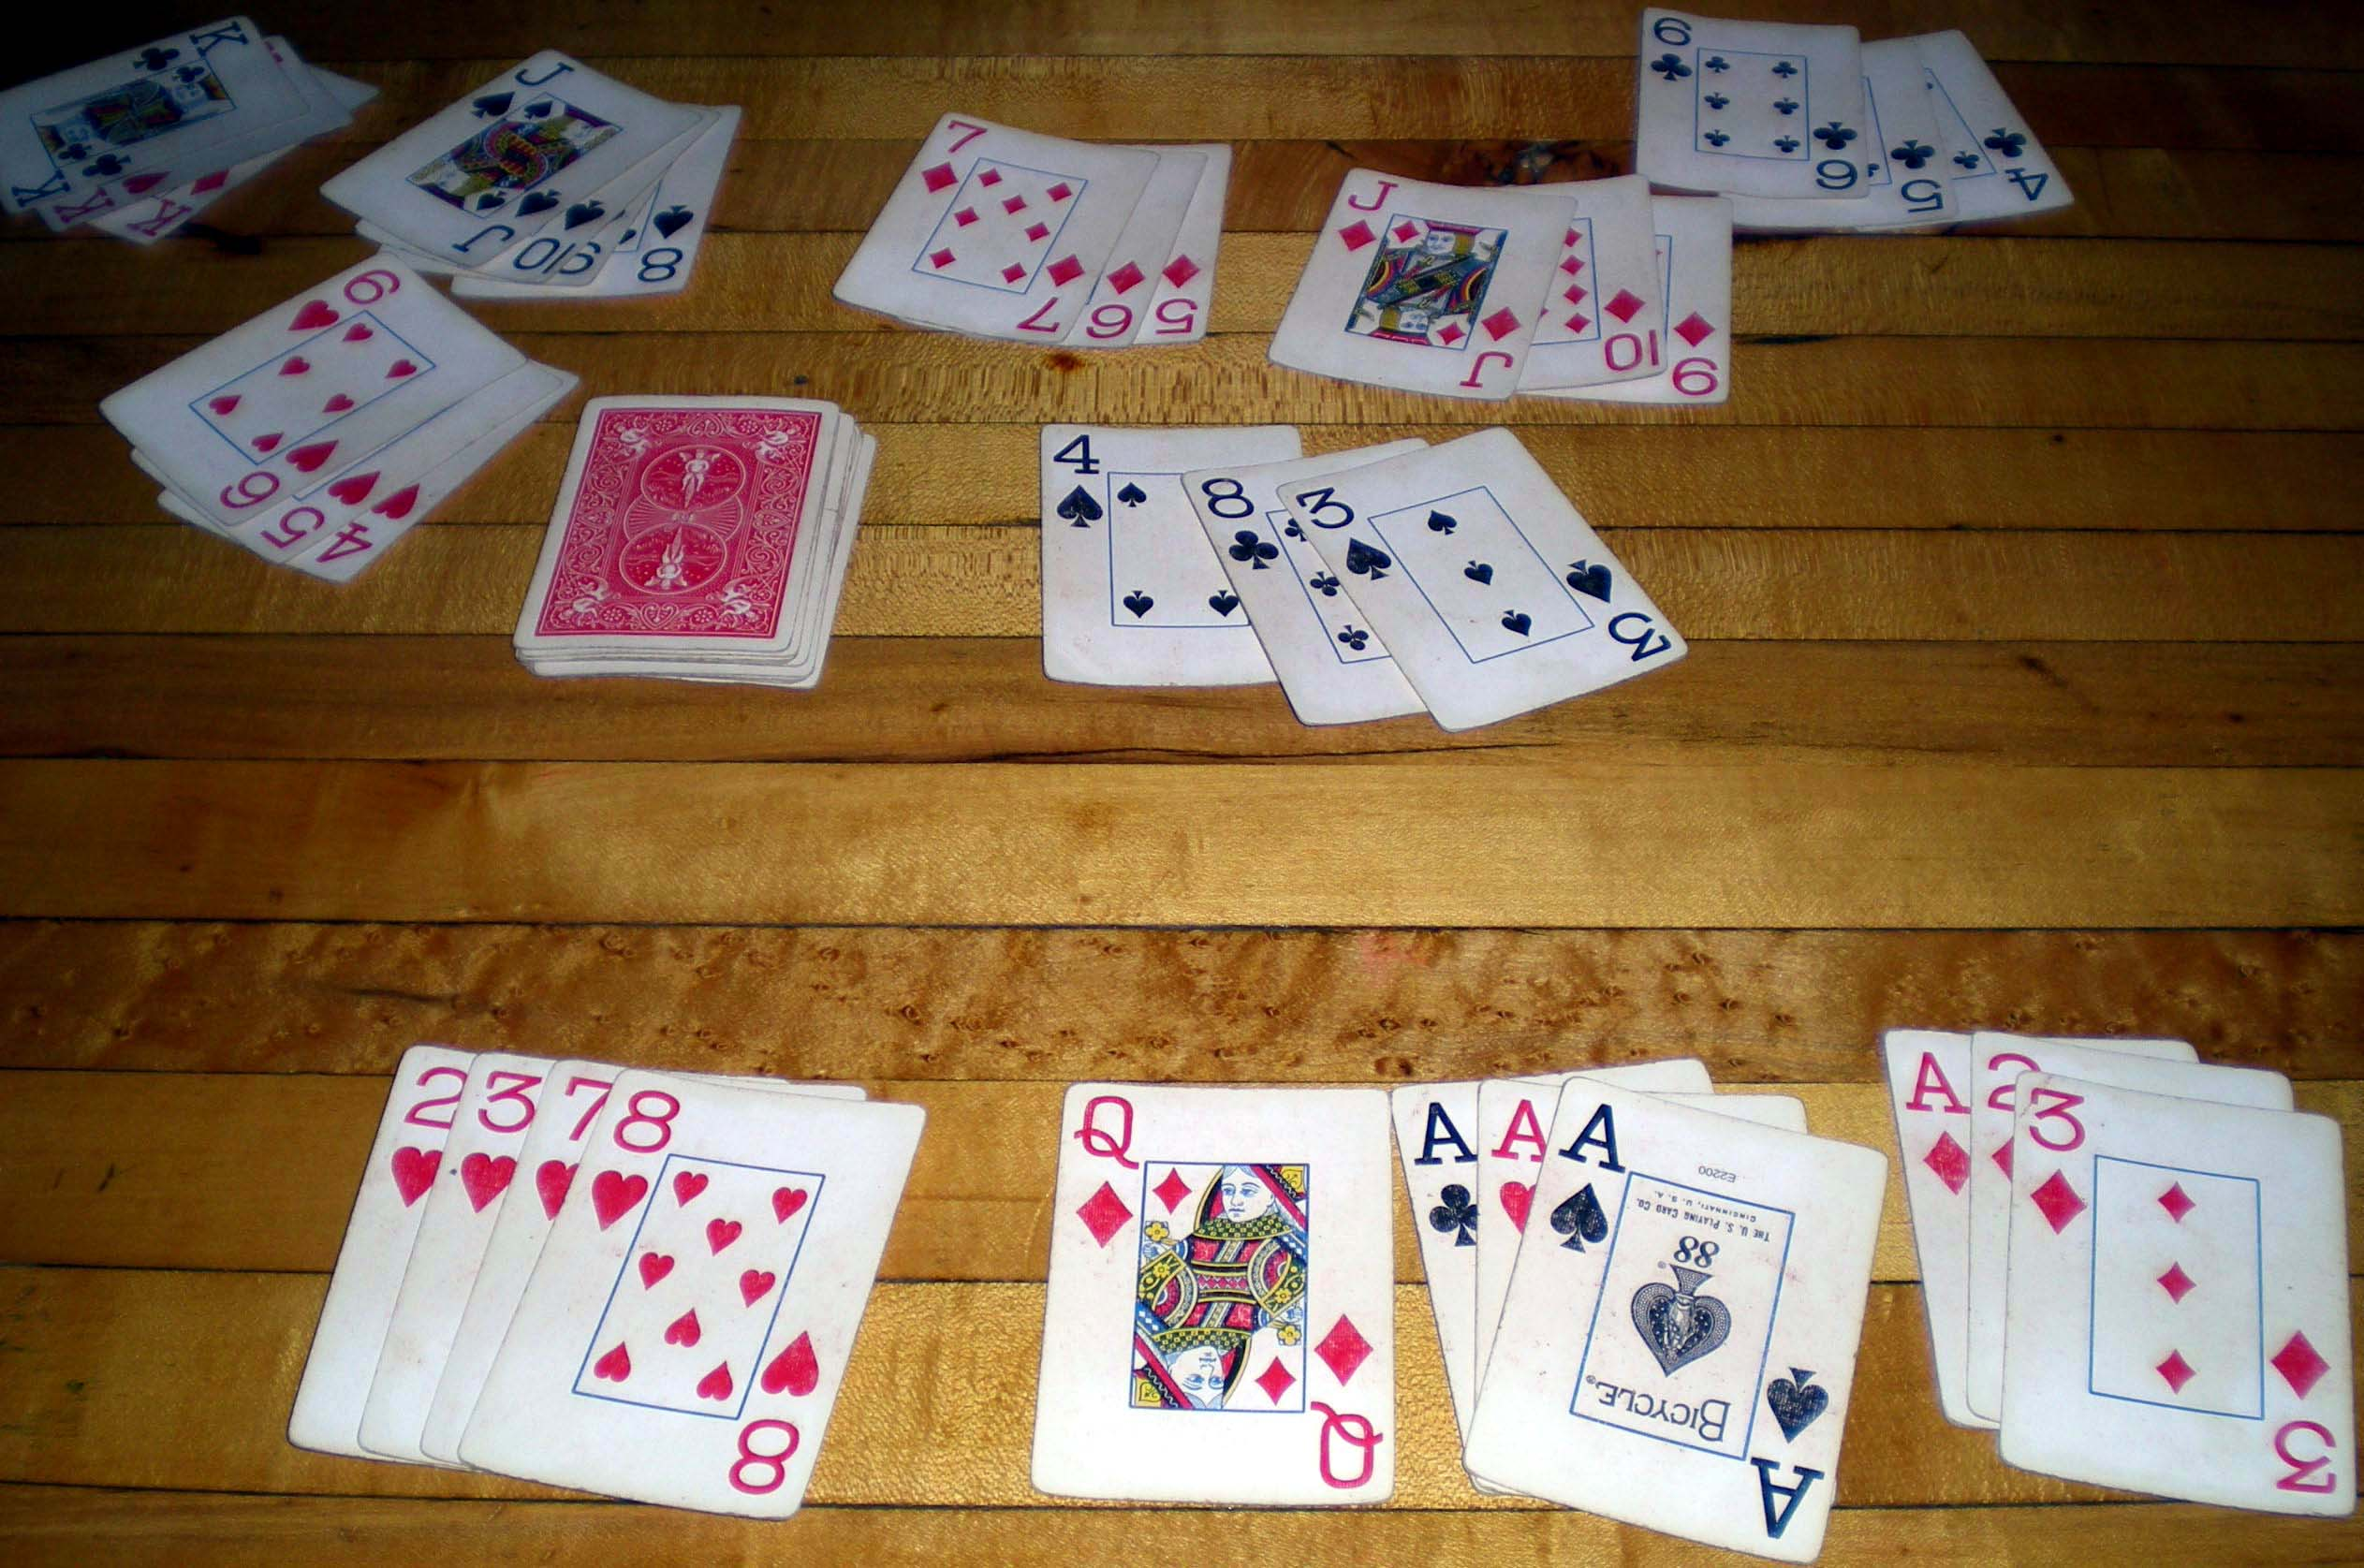 game of rummy